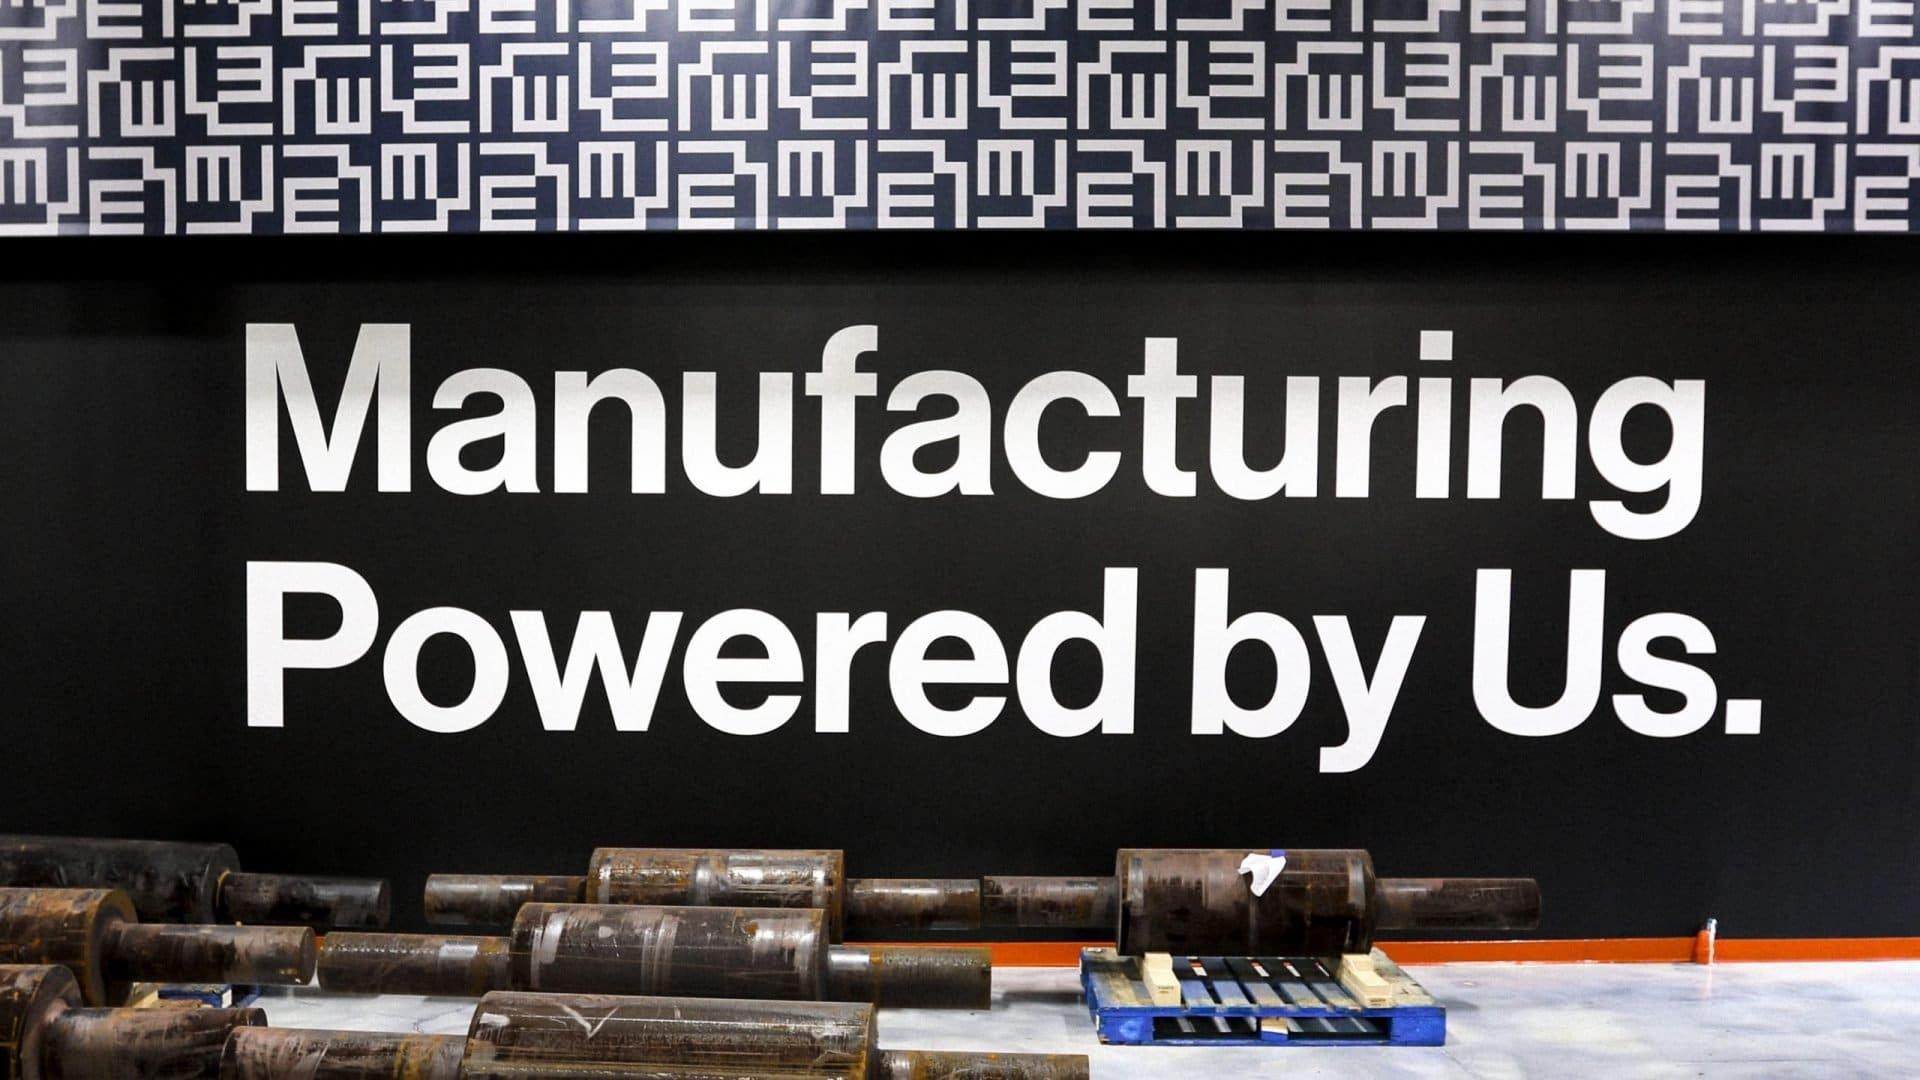 Empower Manufacturing interior signage manufacturing powered by us